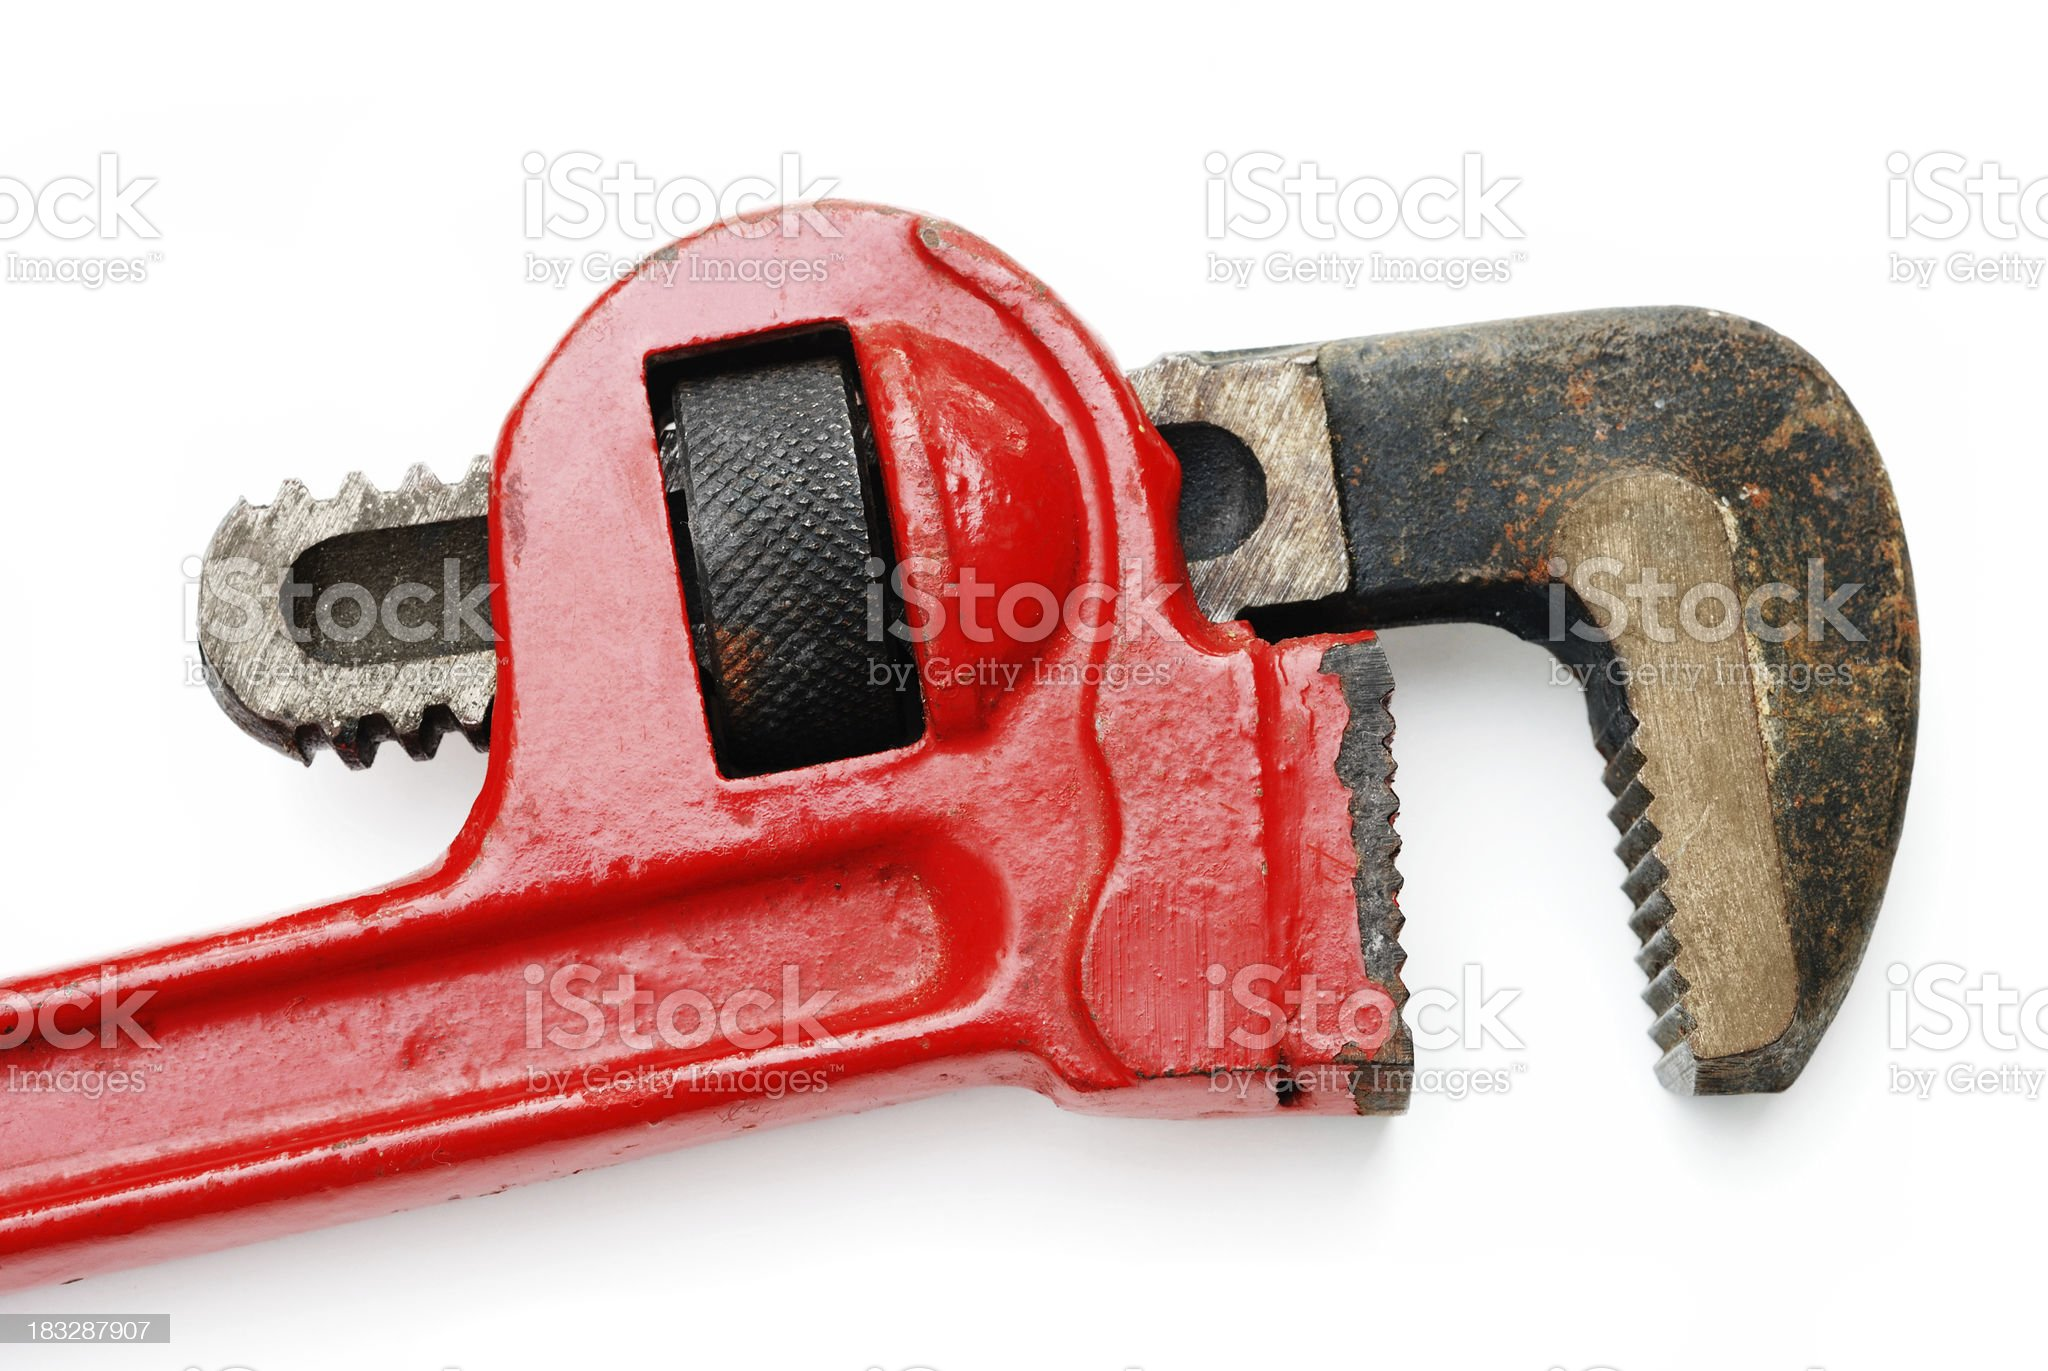 Plumber's pipe wrench royalty-free stock photo